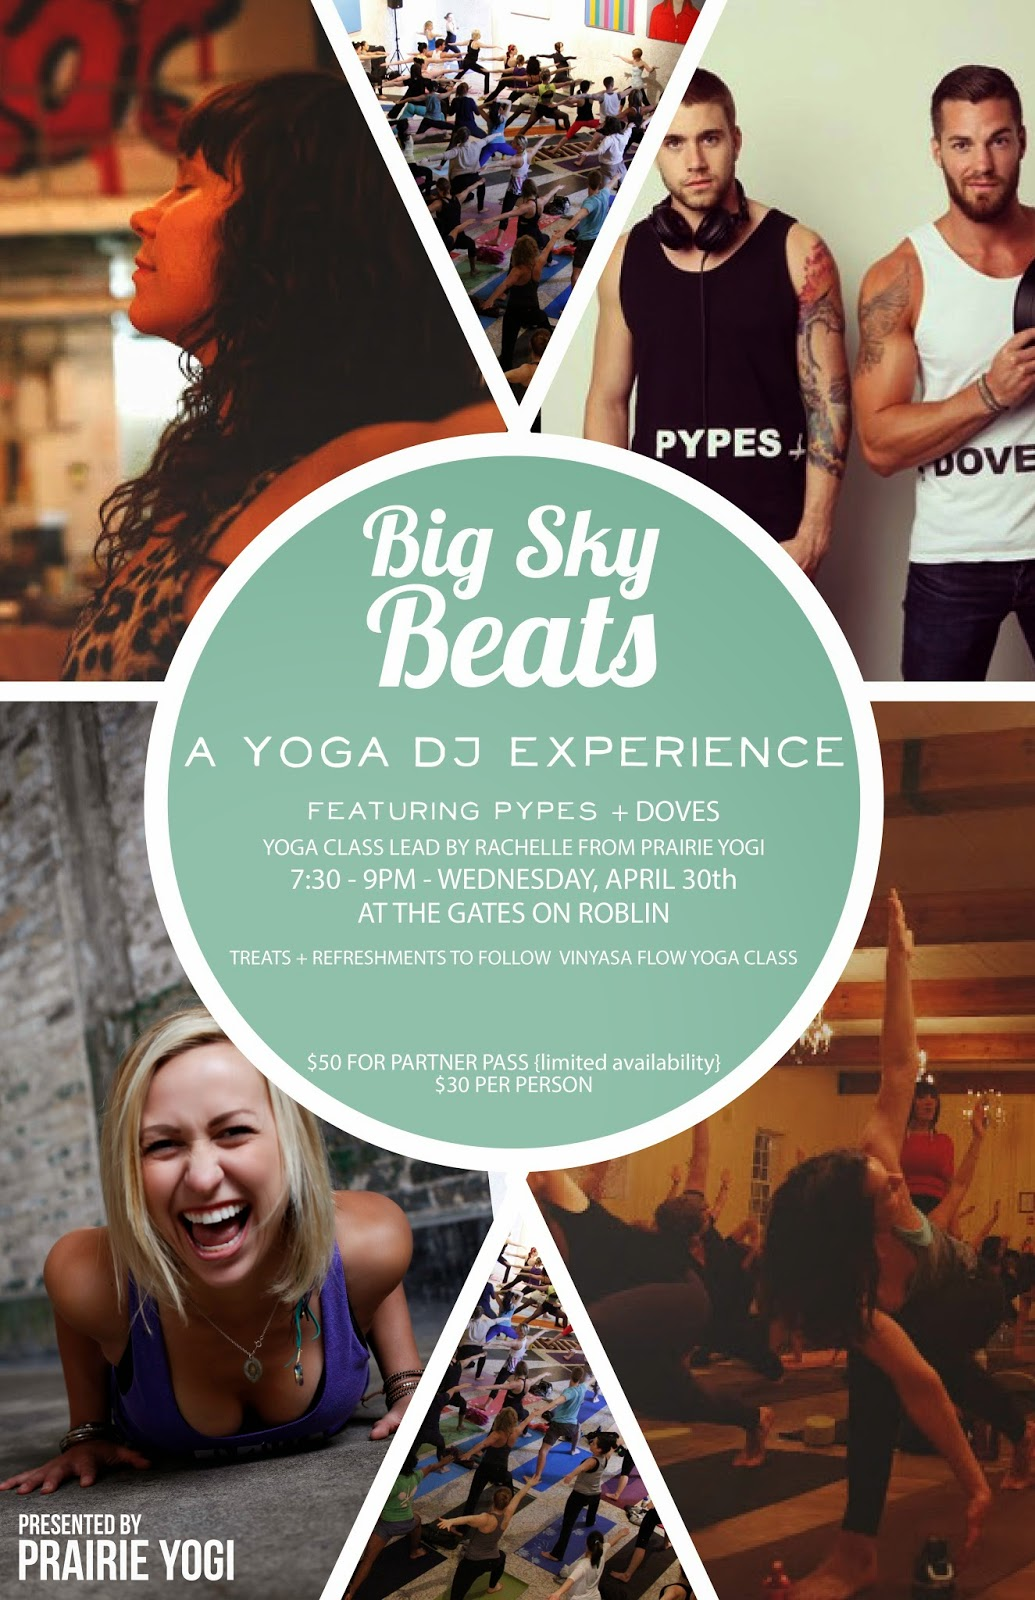 big sky beats, yoga events, DJ pypes and doves, the gates on robin, rachelle taylor, prairie yogi events, winnipeg events,